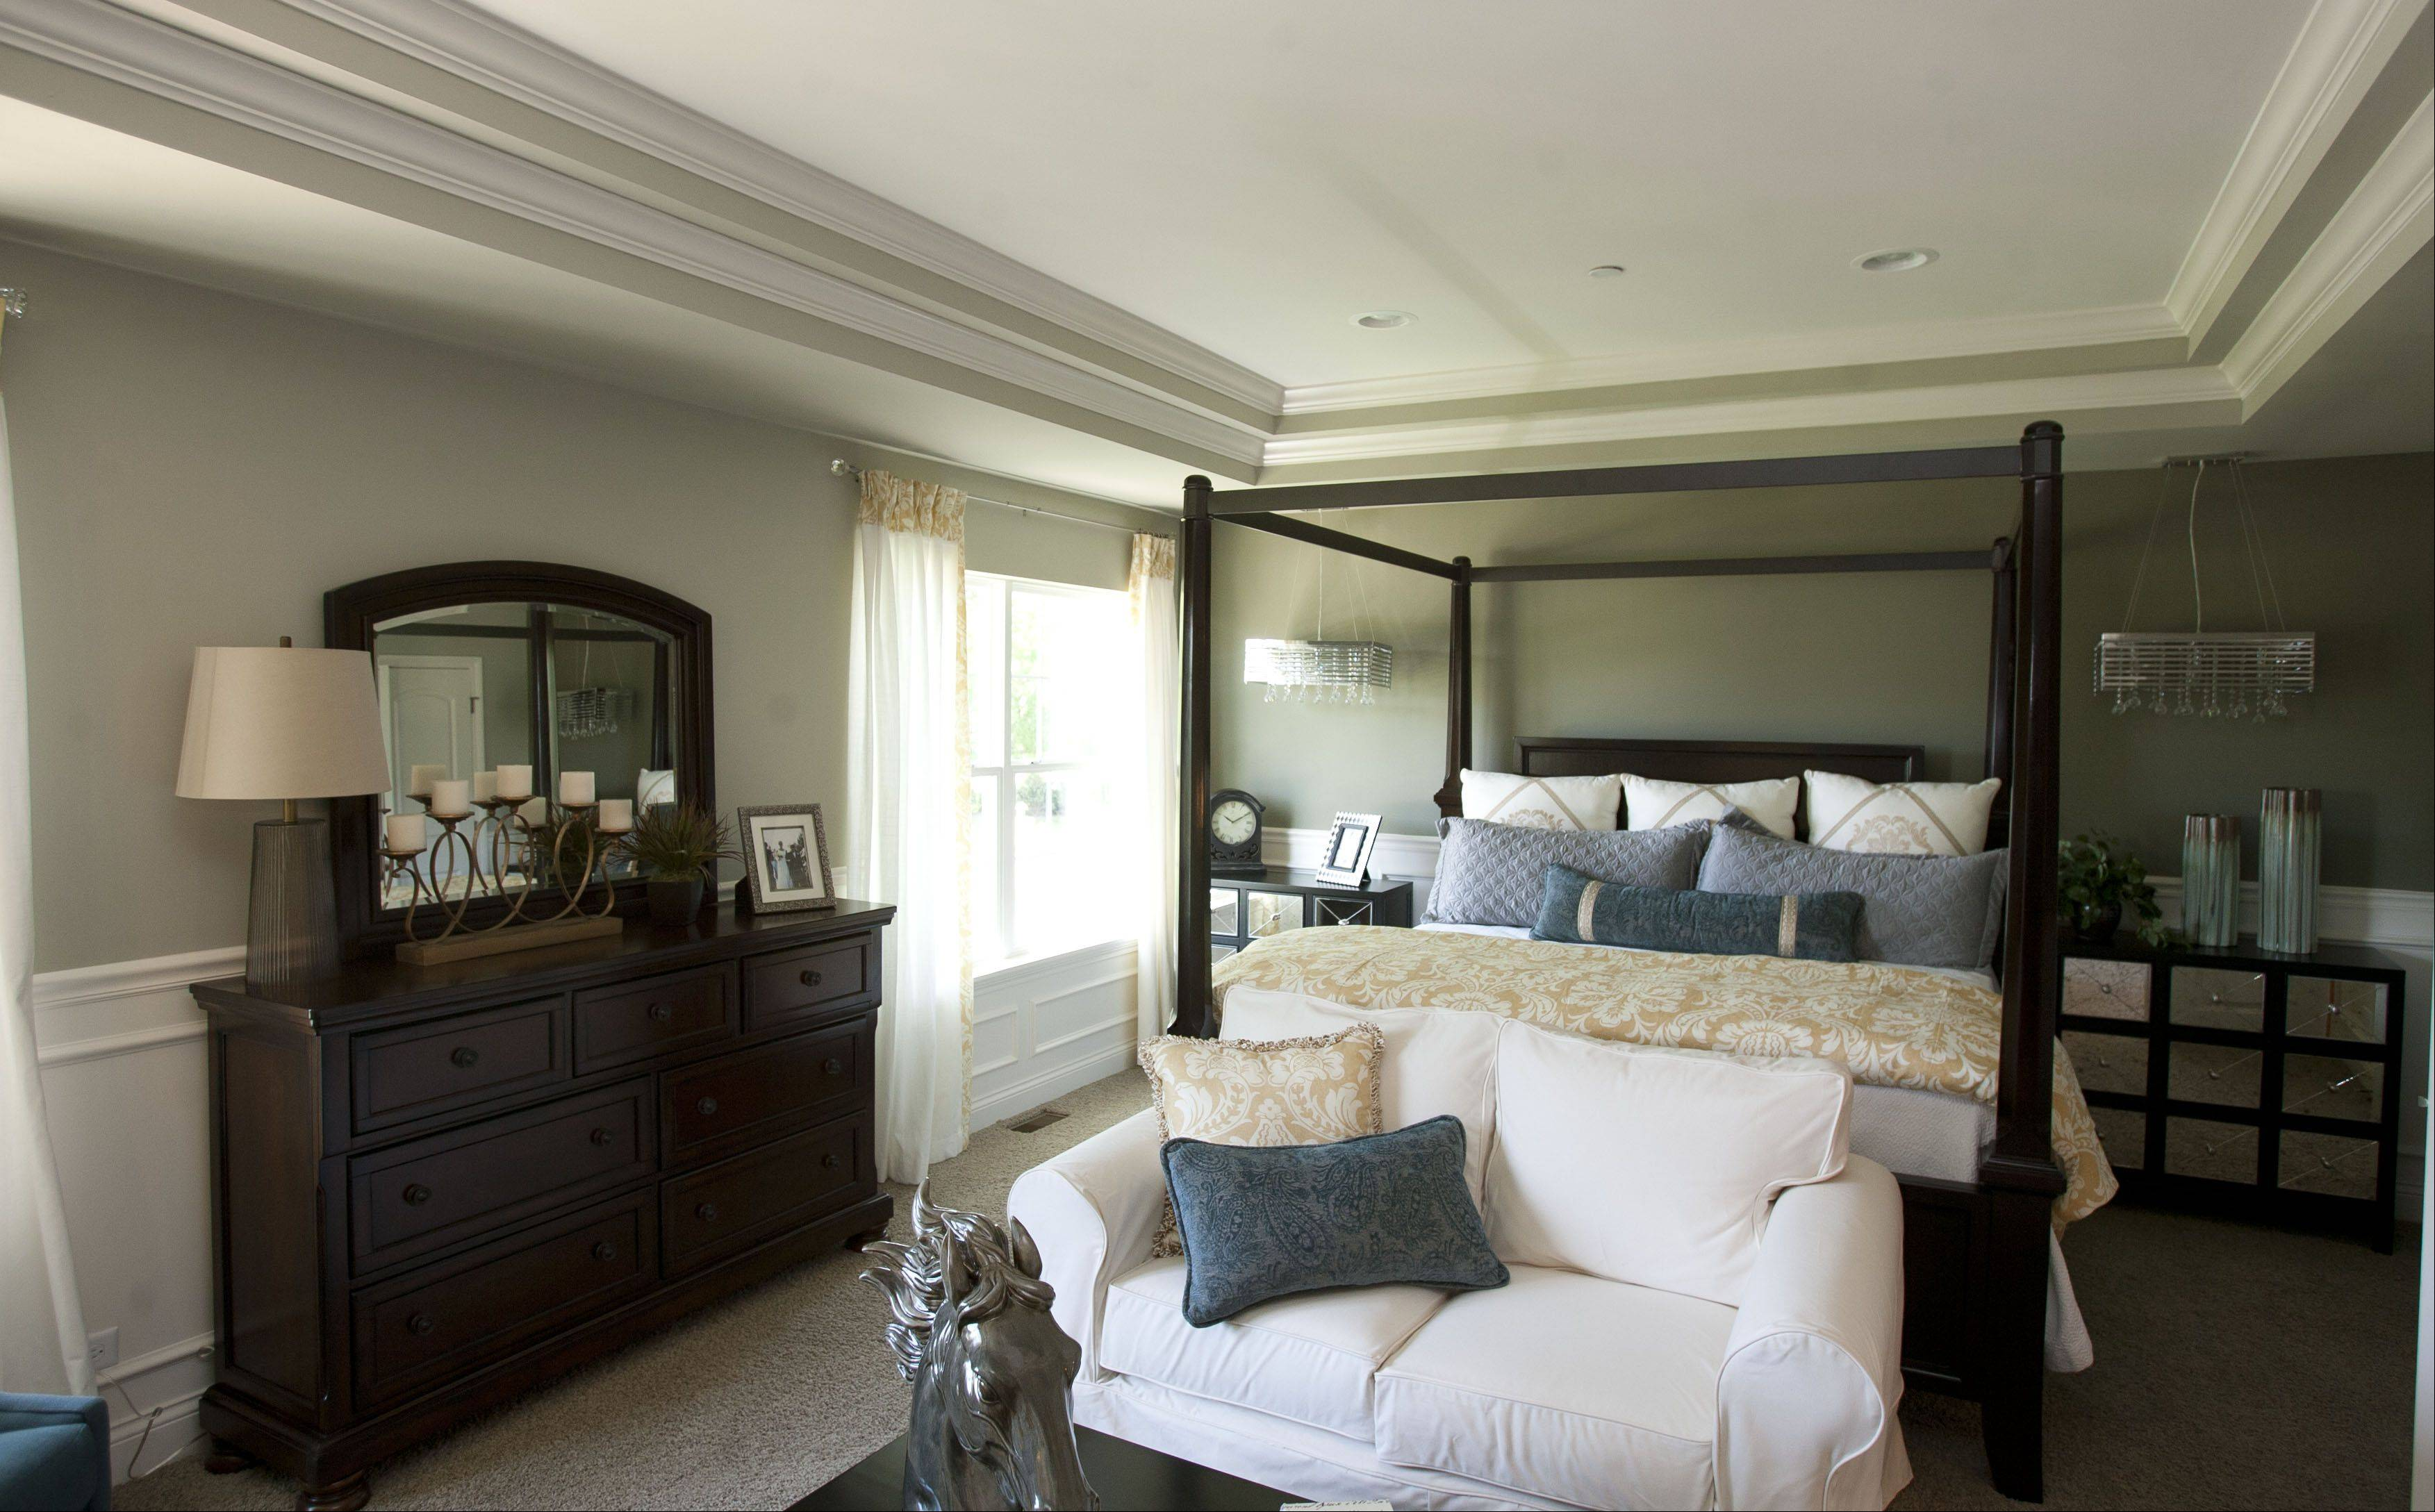 Each room in the Morton model, including this master bedroom, was furnished by Mary Ward, director of design for Laura O'Connor Design.